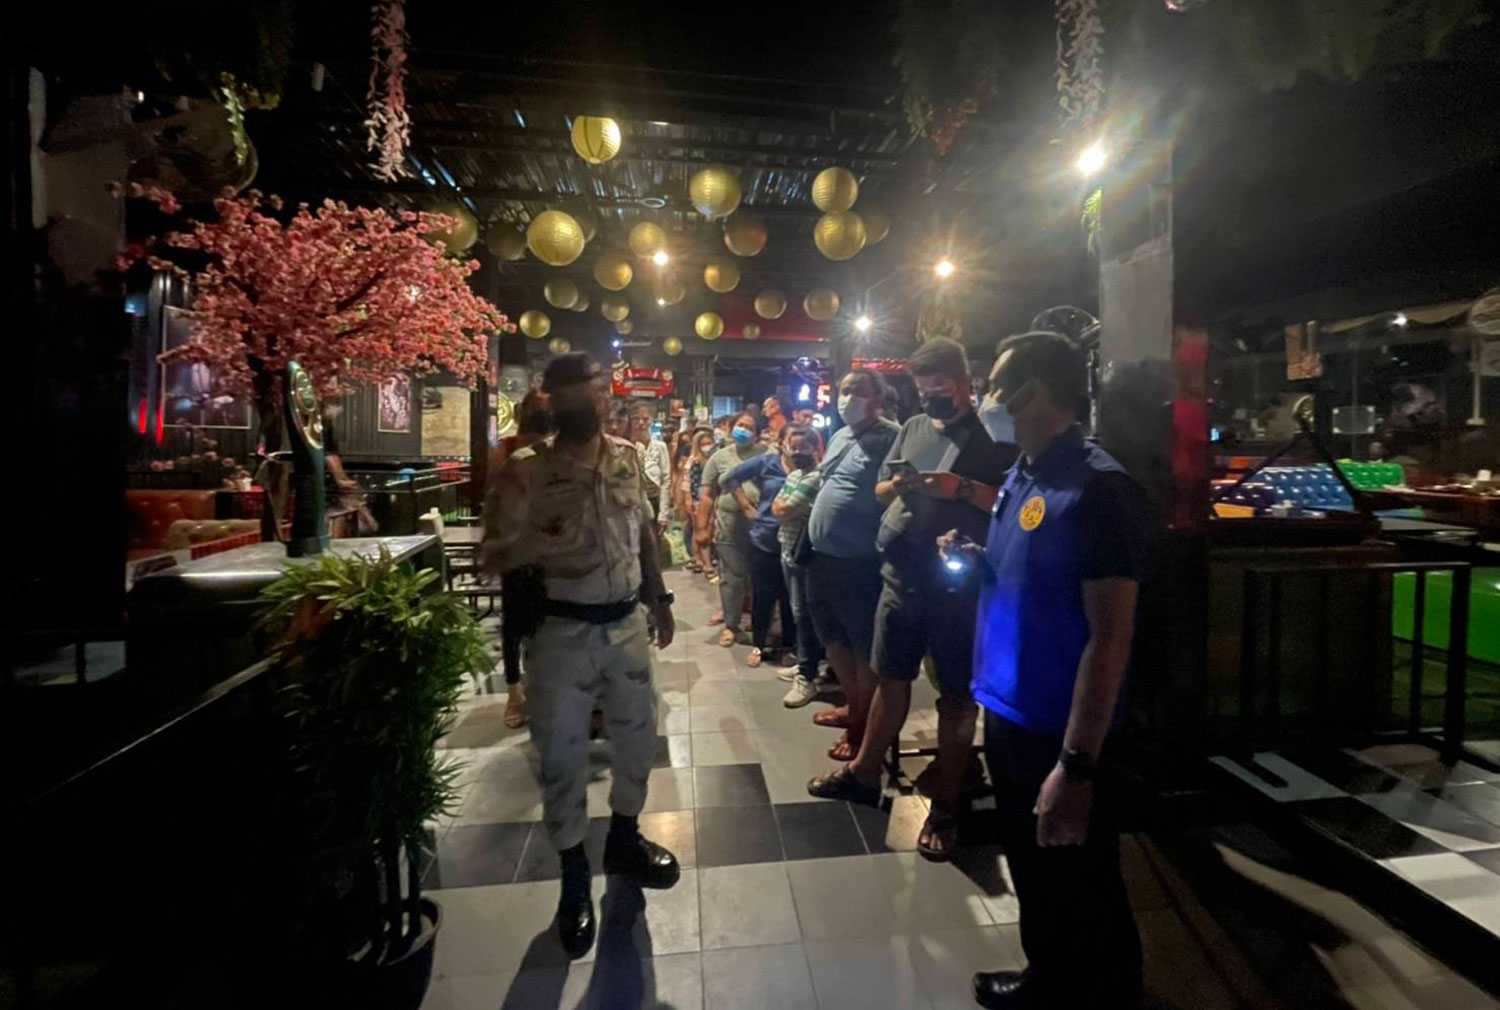 Customers and staff of Lamer Restaurant & Karaoke in Muang district of Nakhon Ratchasima, lined up ready to be taken away after the raid on Wednesday night. (Photo: Rrasit Tangprasert)